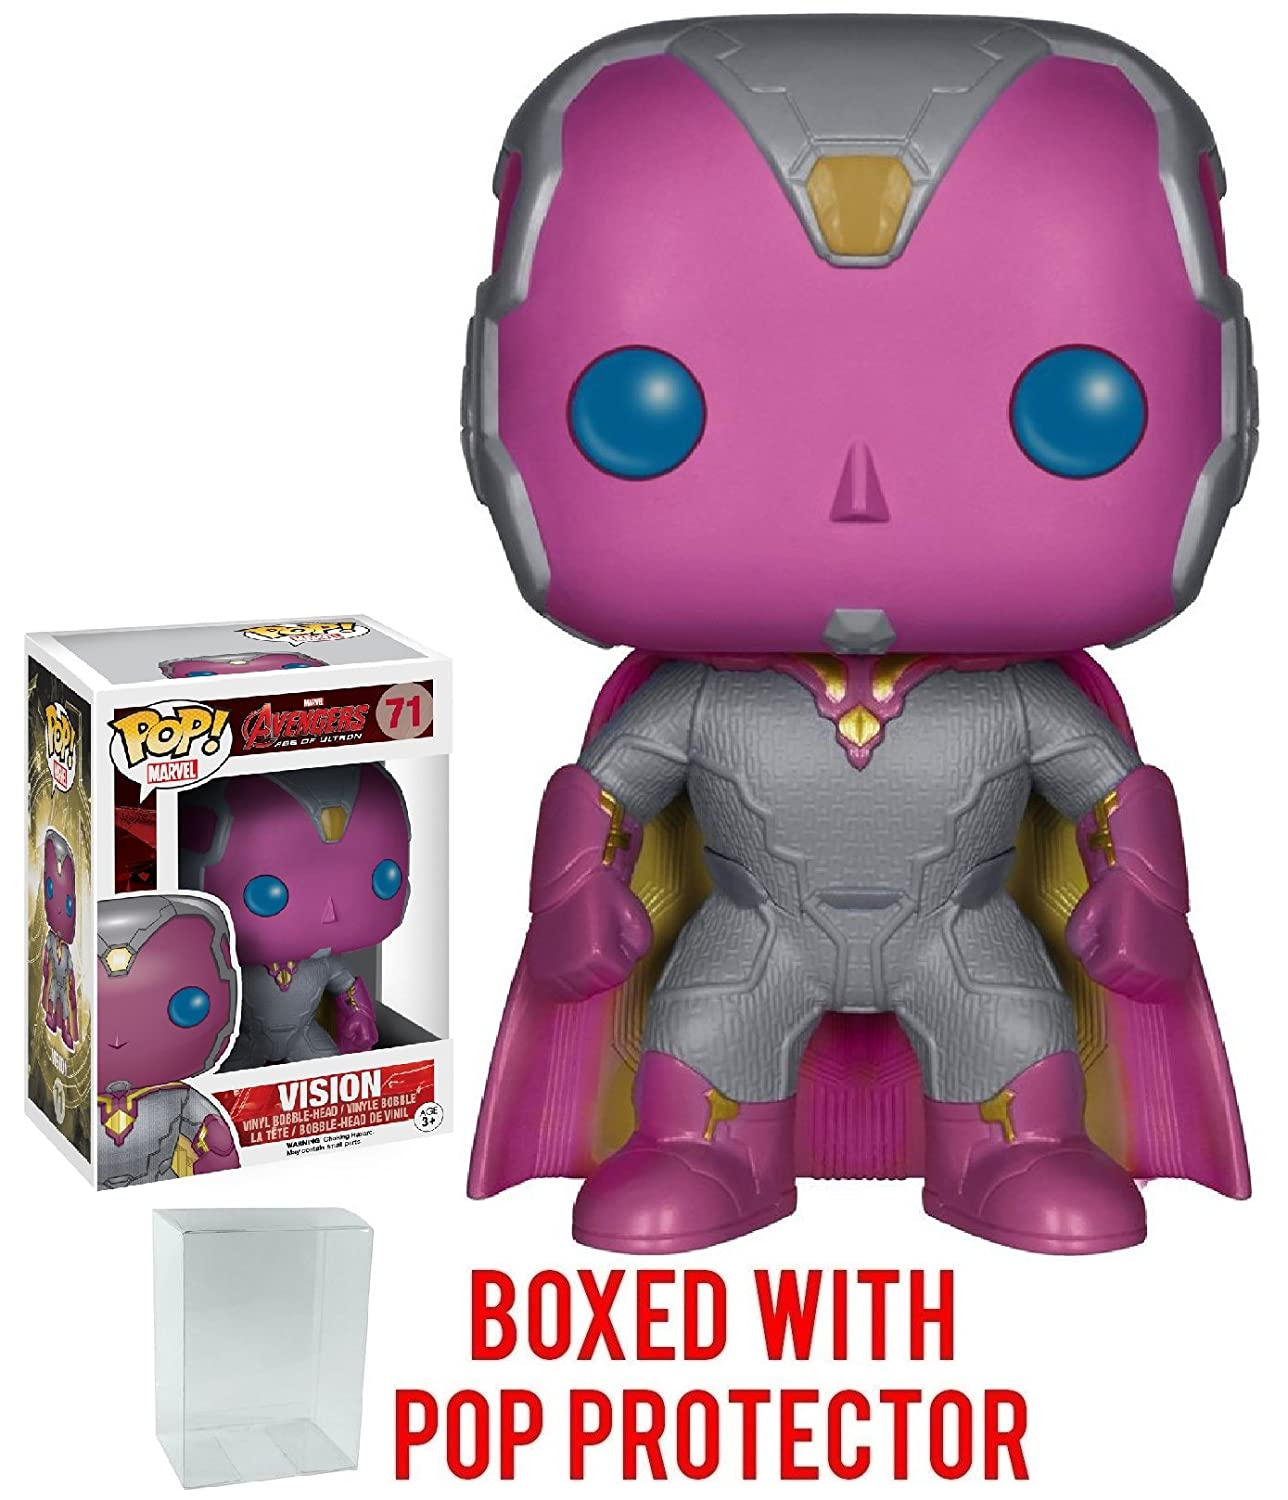 Vision Vinyl Figure Bundled with Pop Box Protector CASE Marvel: Avengers 2 Age of Ultron Funko Pop